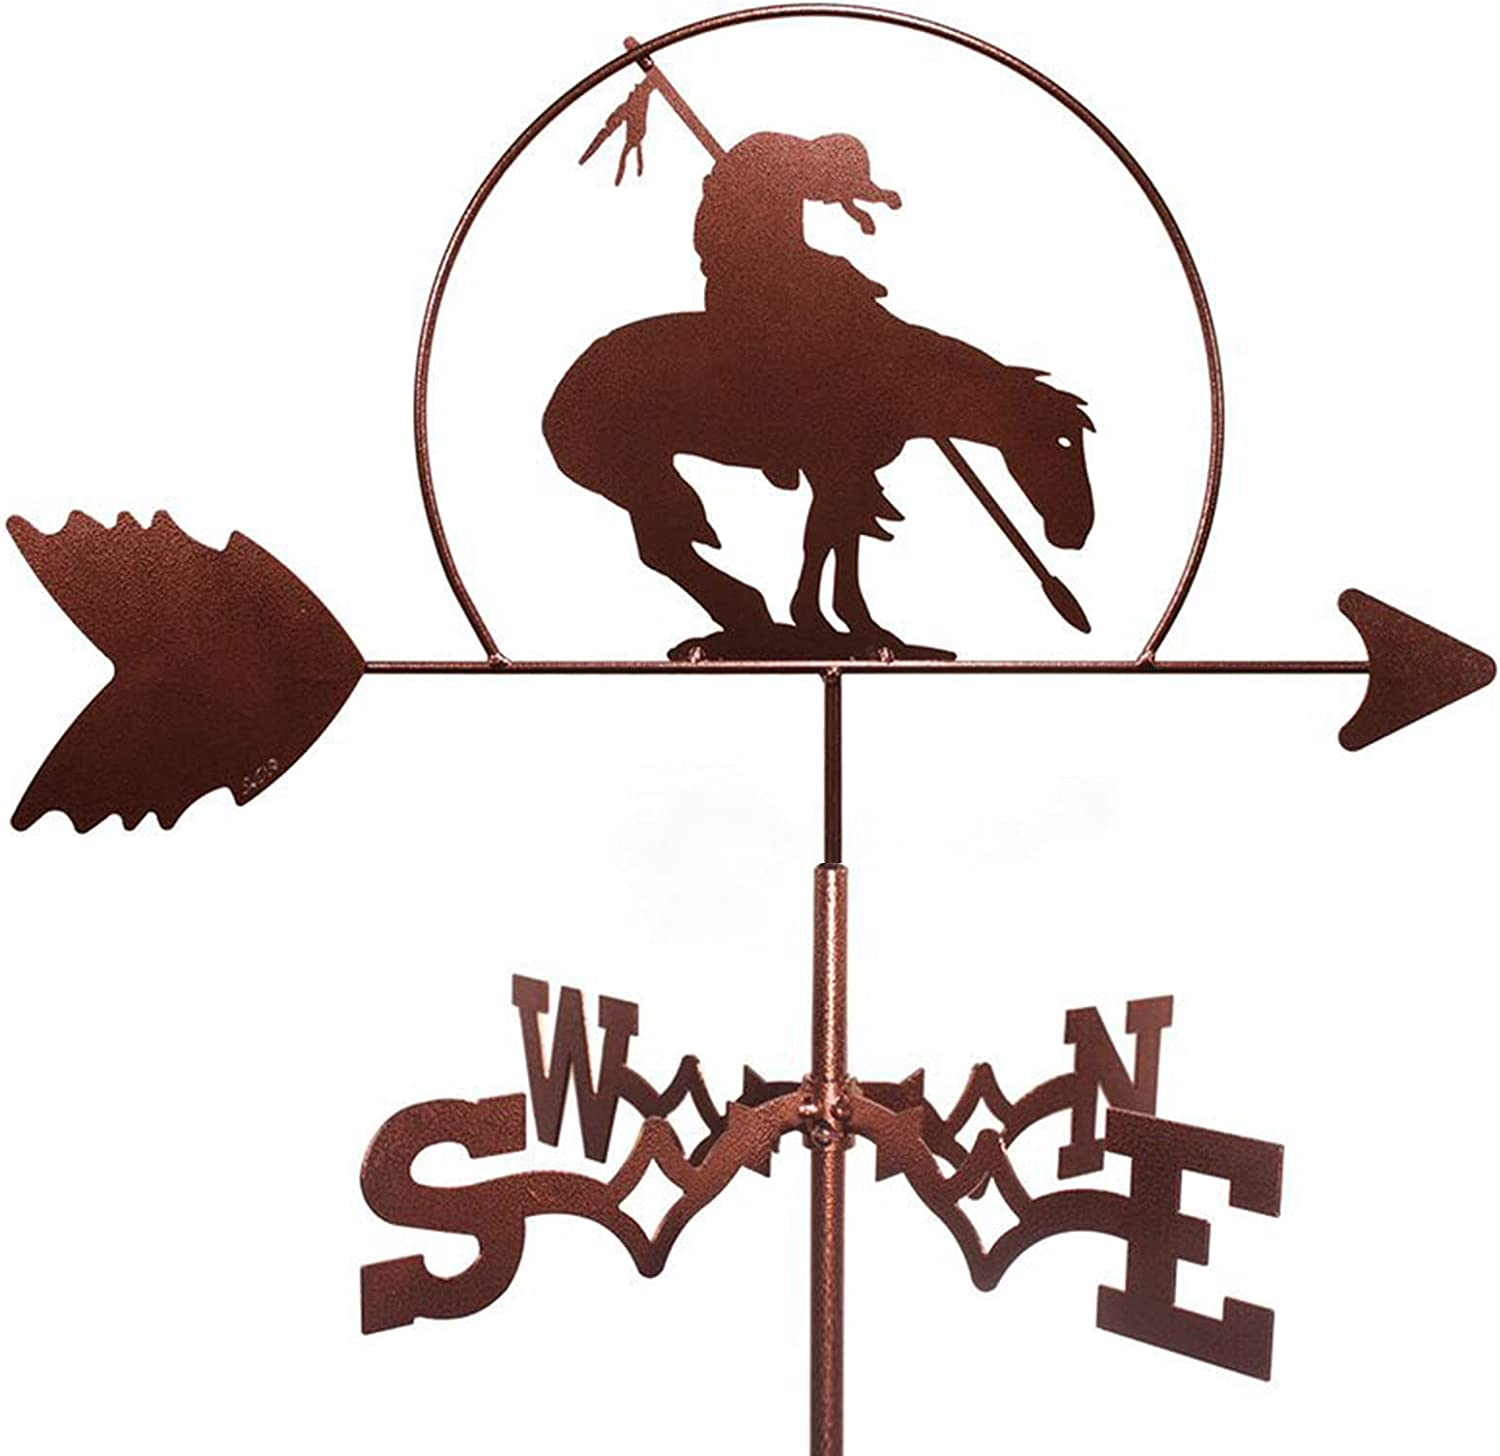 YDHNB Max 54% OFF Metal Limited time for free shipping Weathervane Animal Weather Mount with Vane Roof